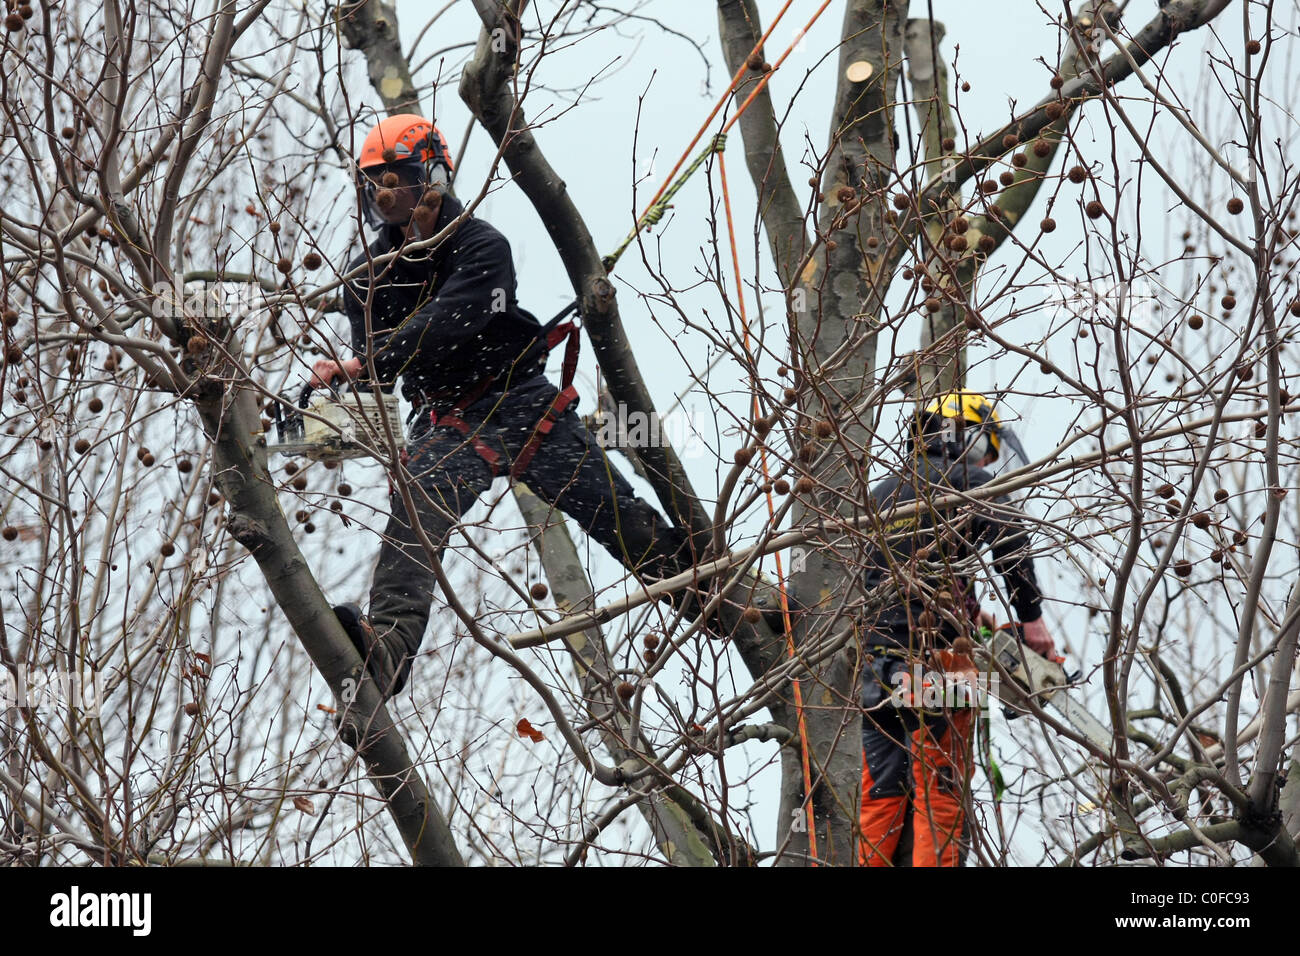 Tree surgeon trimming branches of a tree on the embankment of the River Thames in London - Stock Image